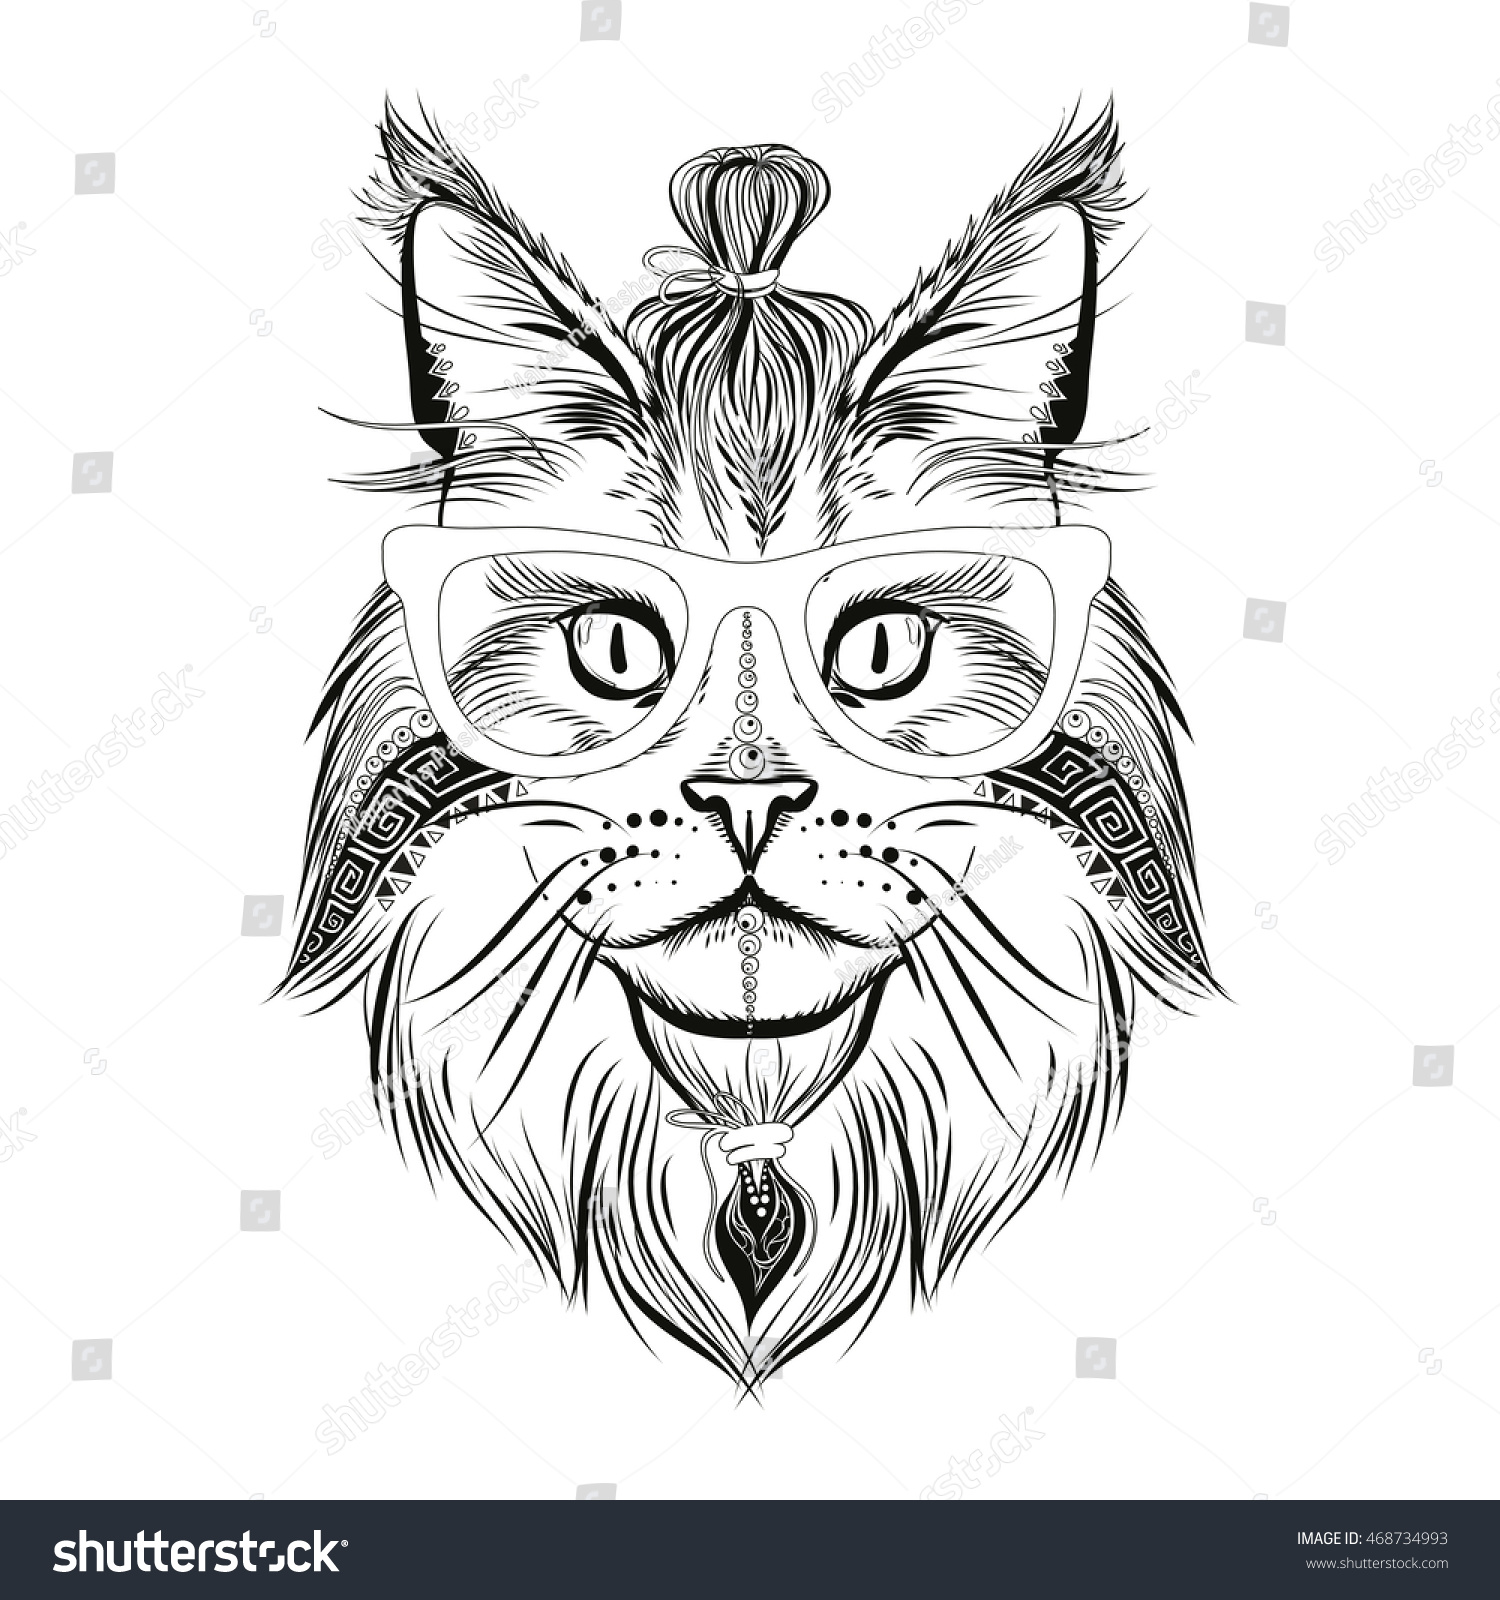 Hipster Cat, Animal Illustration, Coloring Page